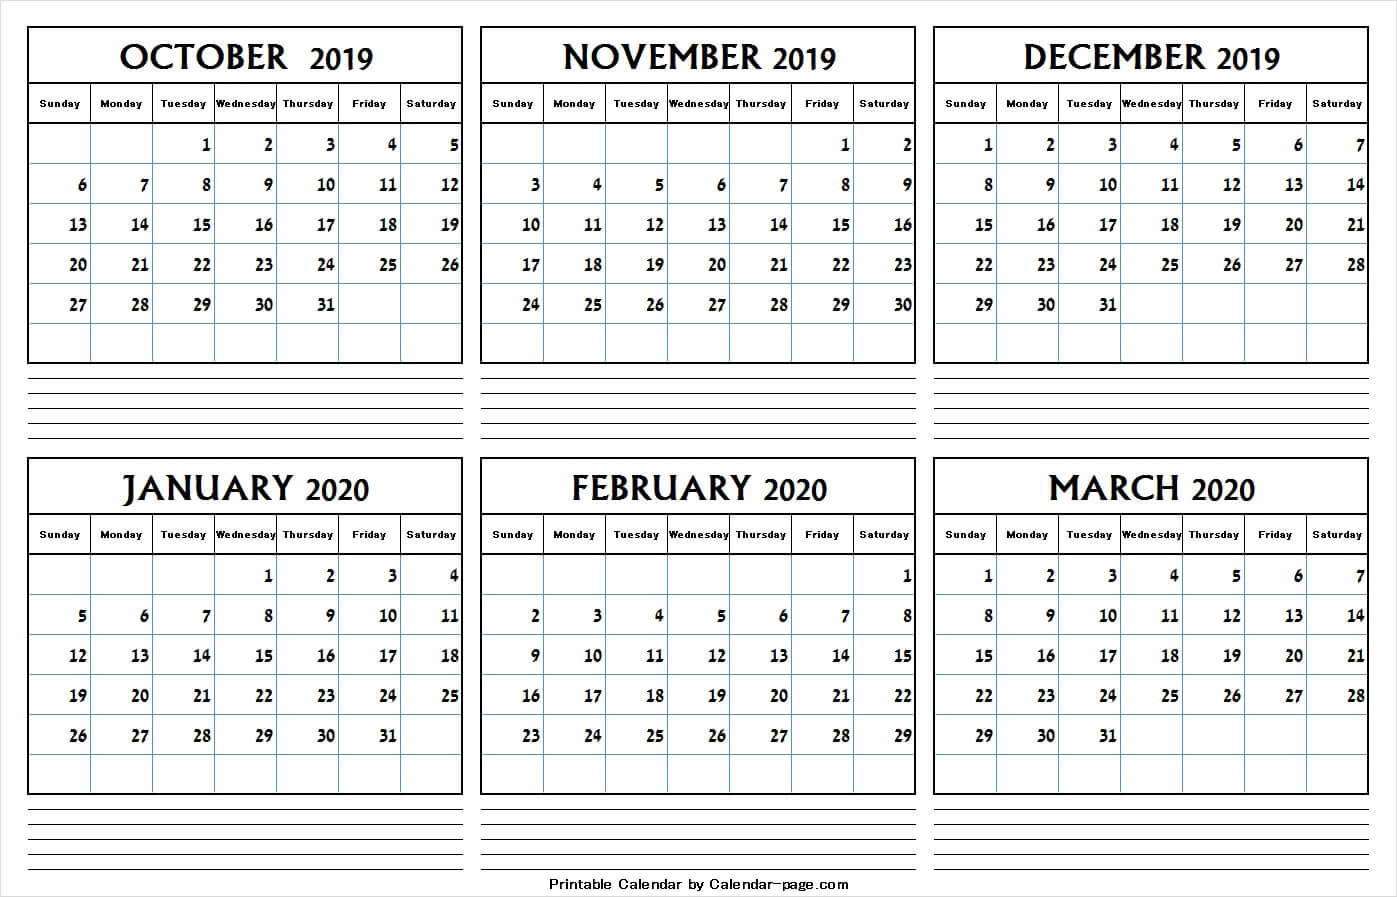 6 Month Calendar October 2019 And March 2020 | Editable Png intended for Six Month Calendar Template